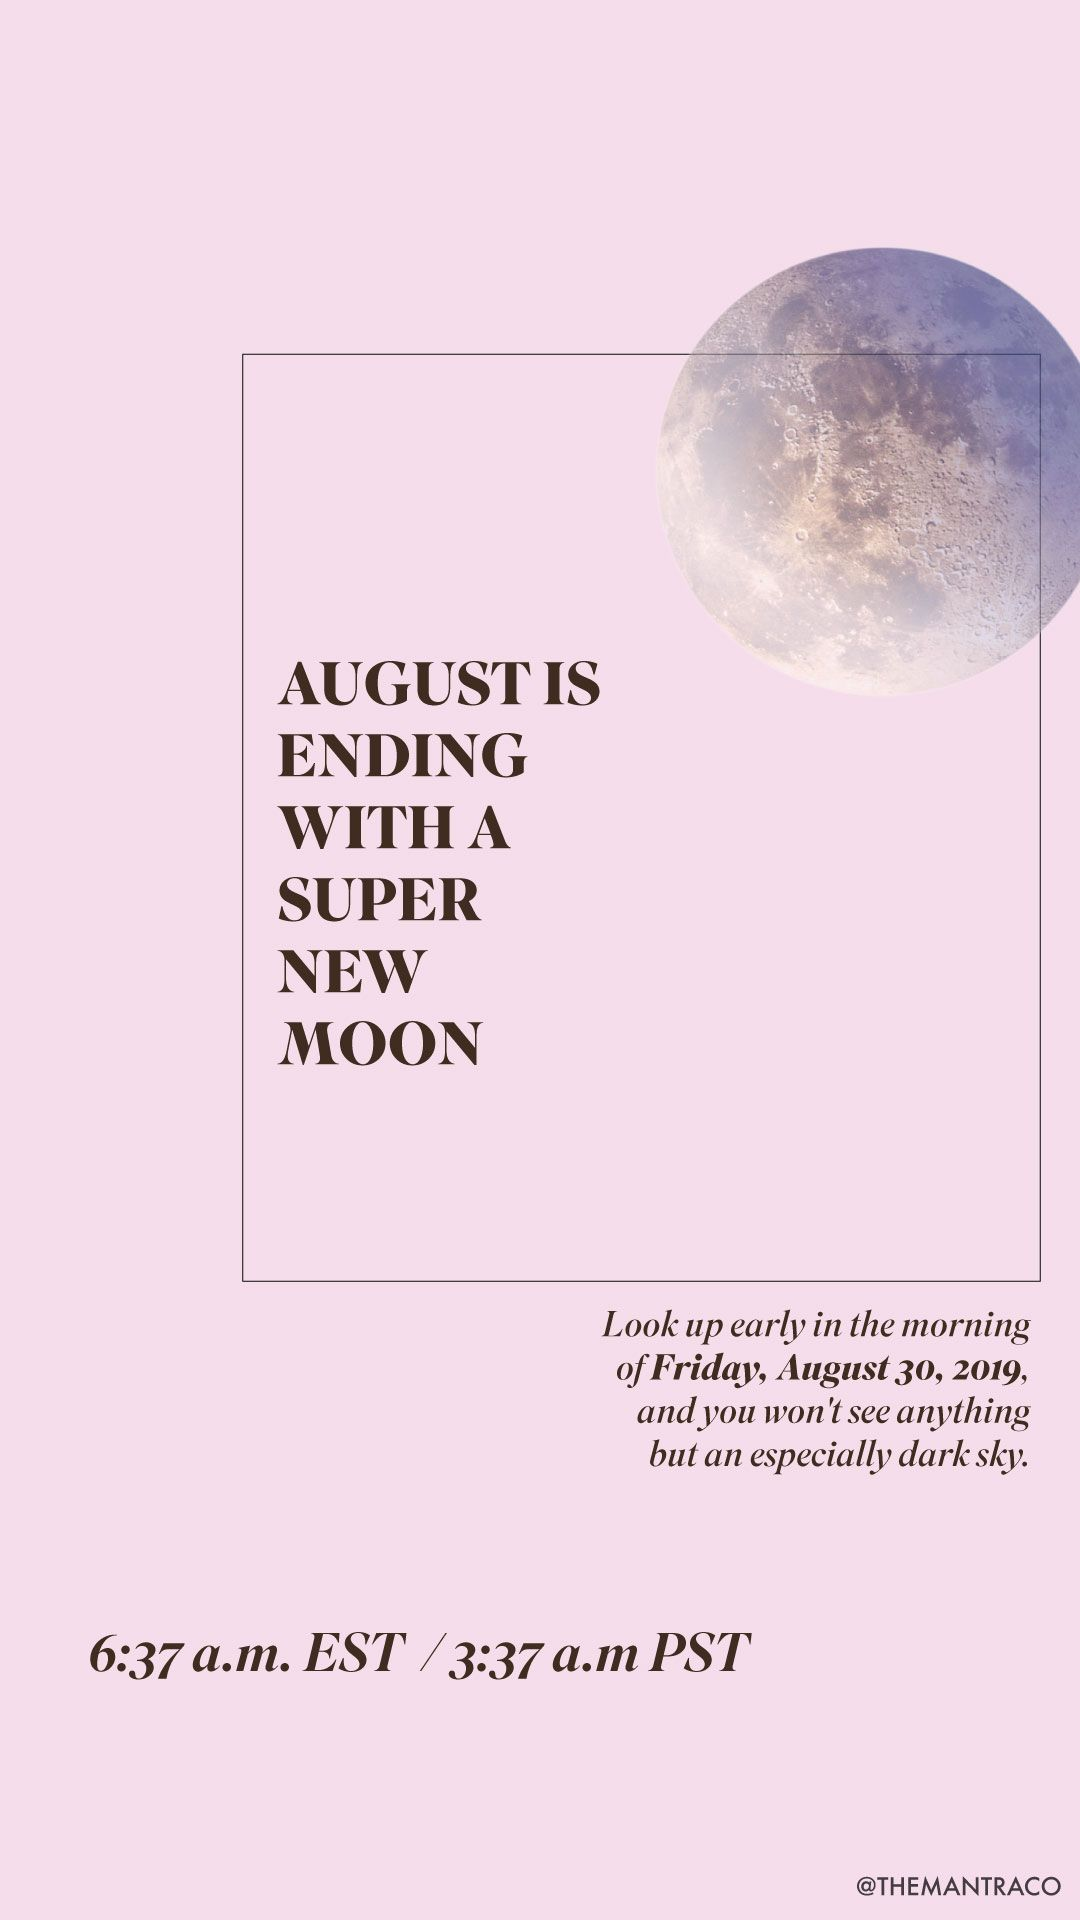 The August 2019 New Moon Is The Best Moon Phase In A Very Long